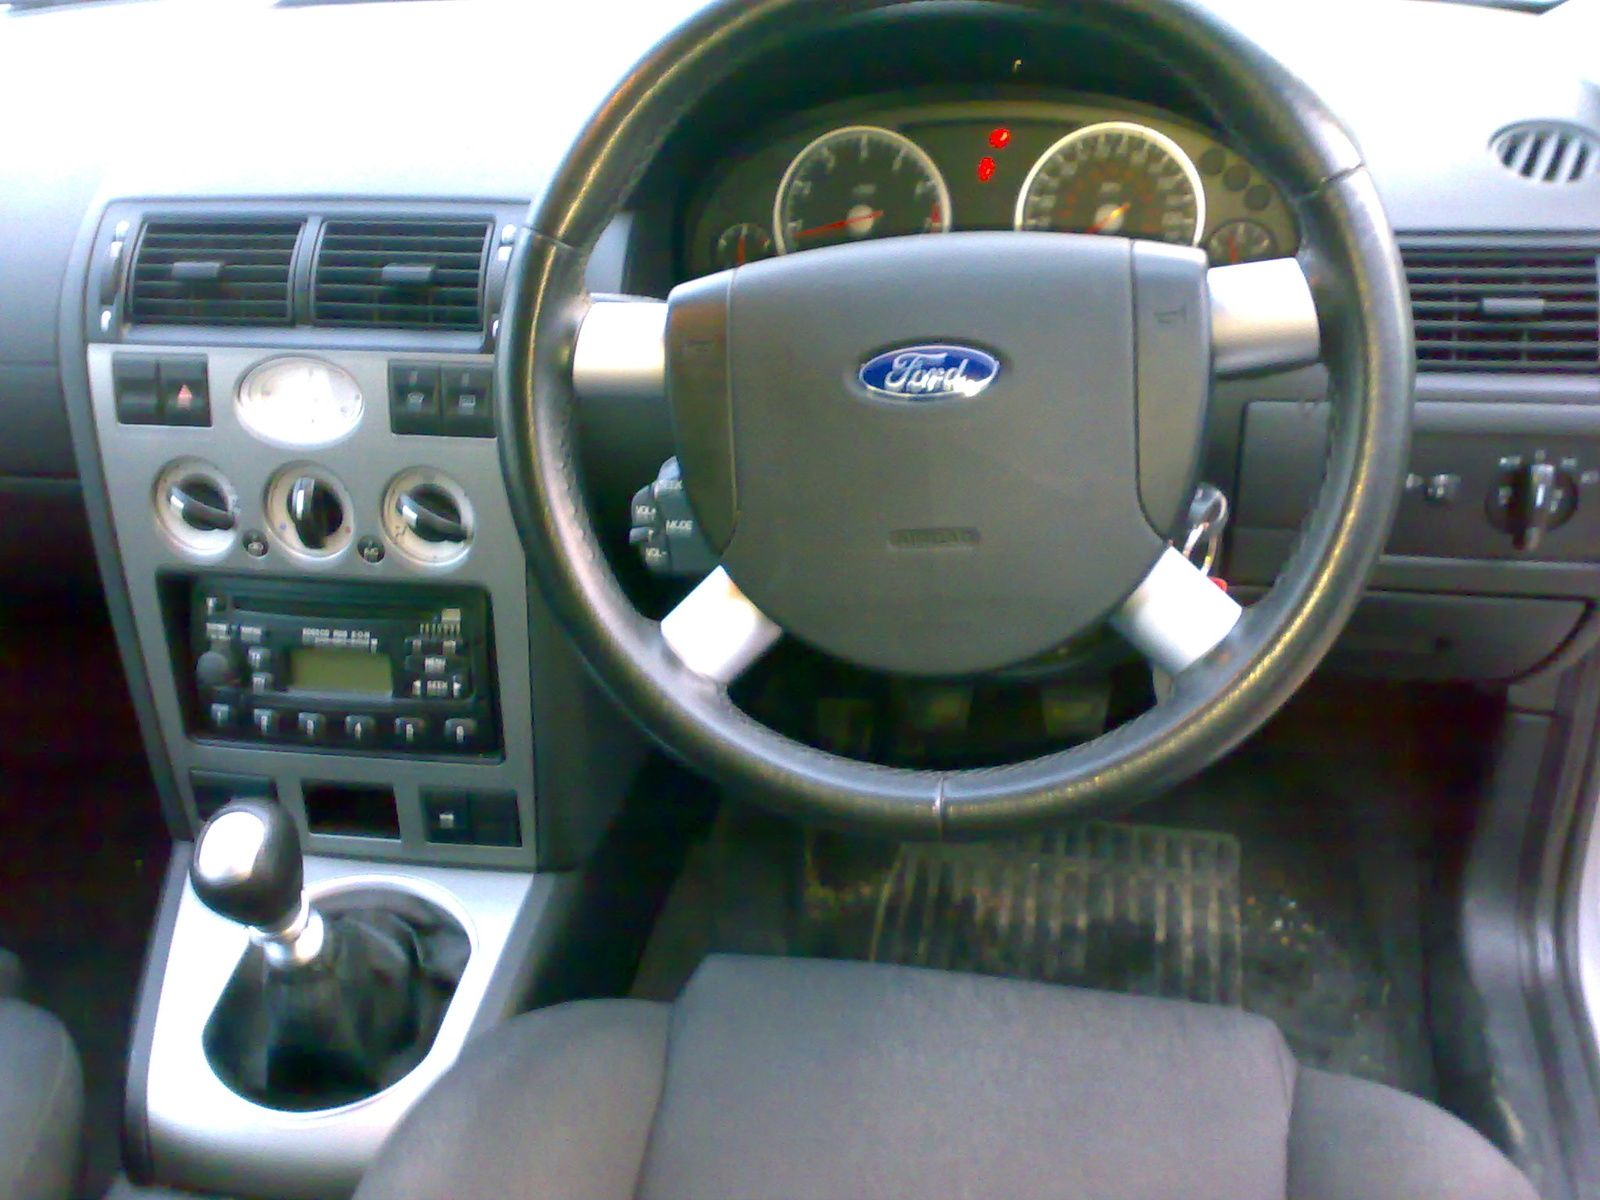 2001 ford mondeo interior pictures cargurus for Interior ford mondeo